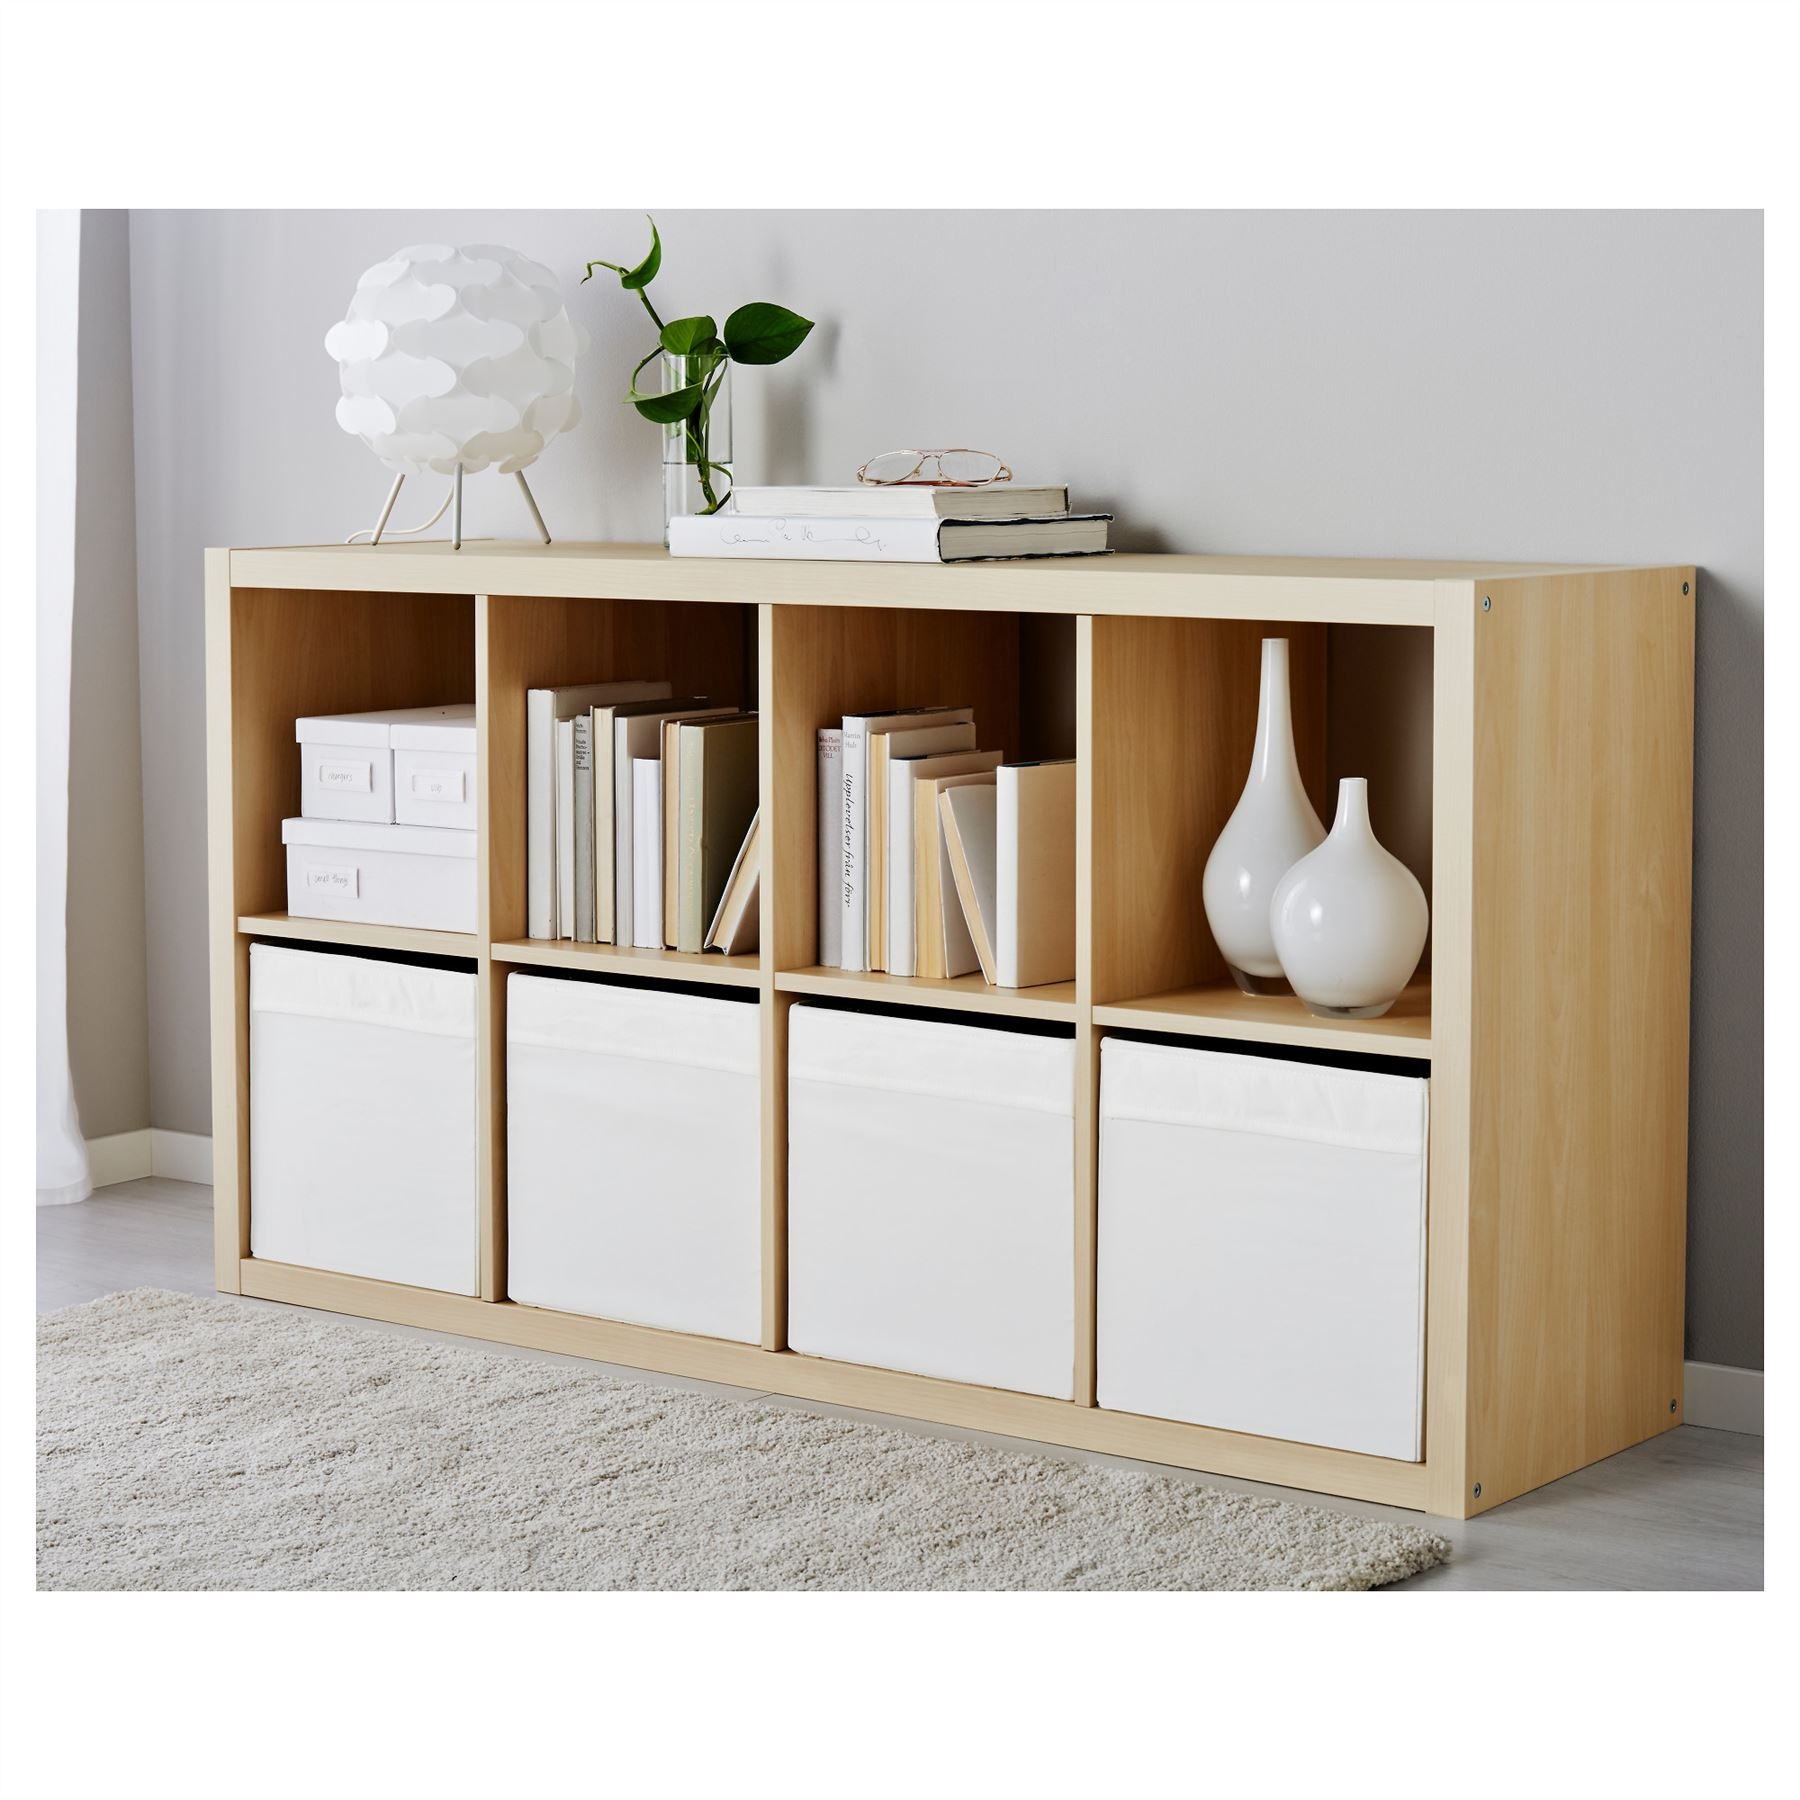 ikea drona box fabric storage kallax shelving magazine toys books white x3 ebay. Black Bedroom Furniture Sets. Home Design Ideas